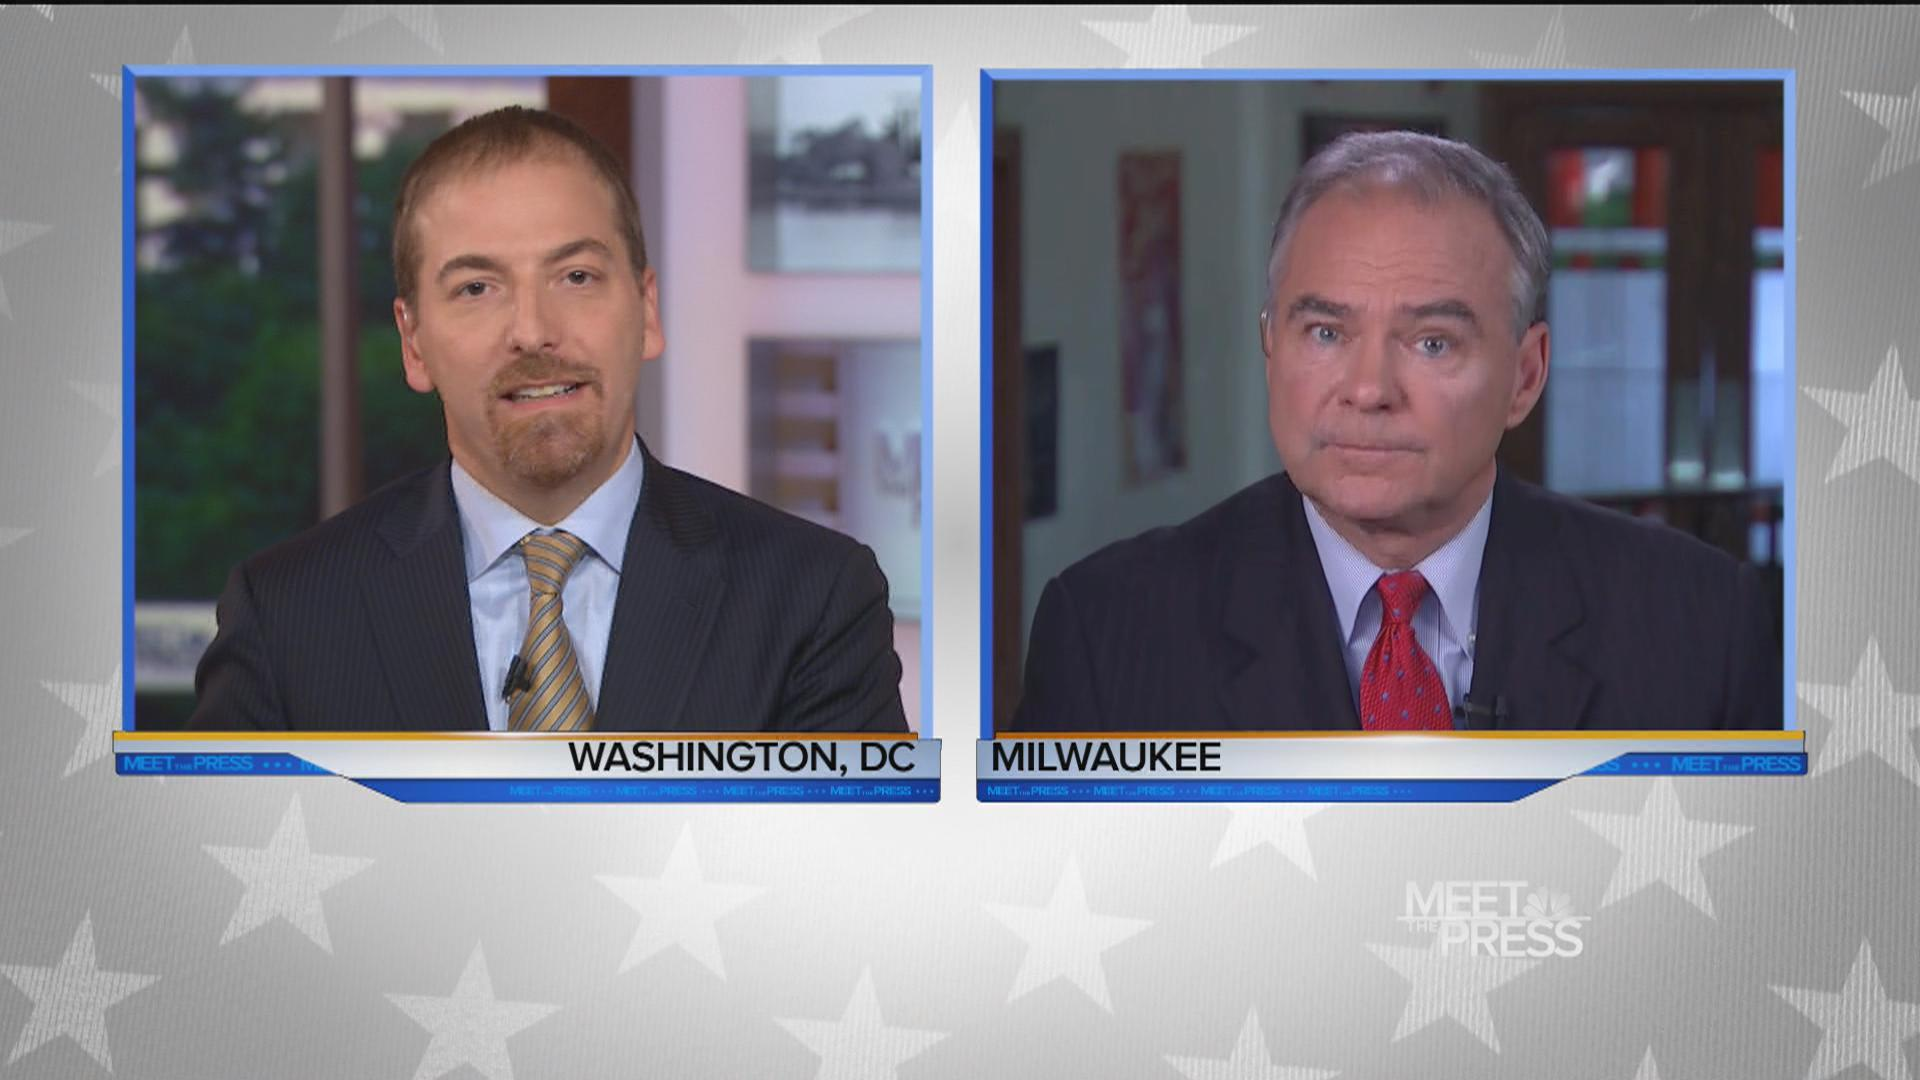 Full Interview: Kaine on Clinton's Trustworthiness and Decision 2016